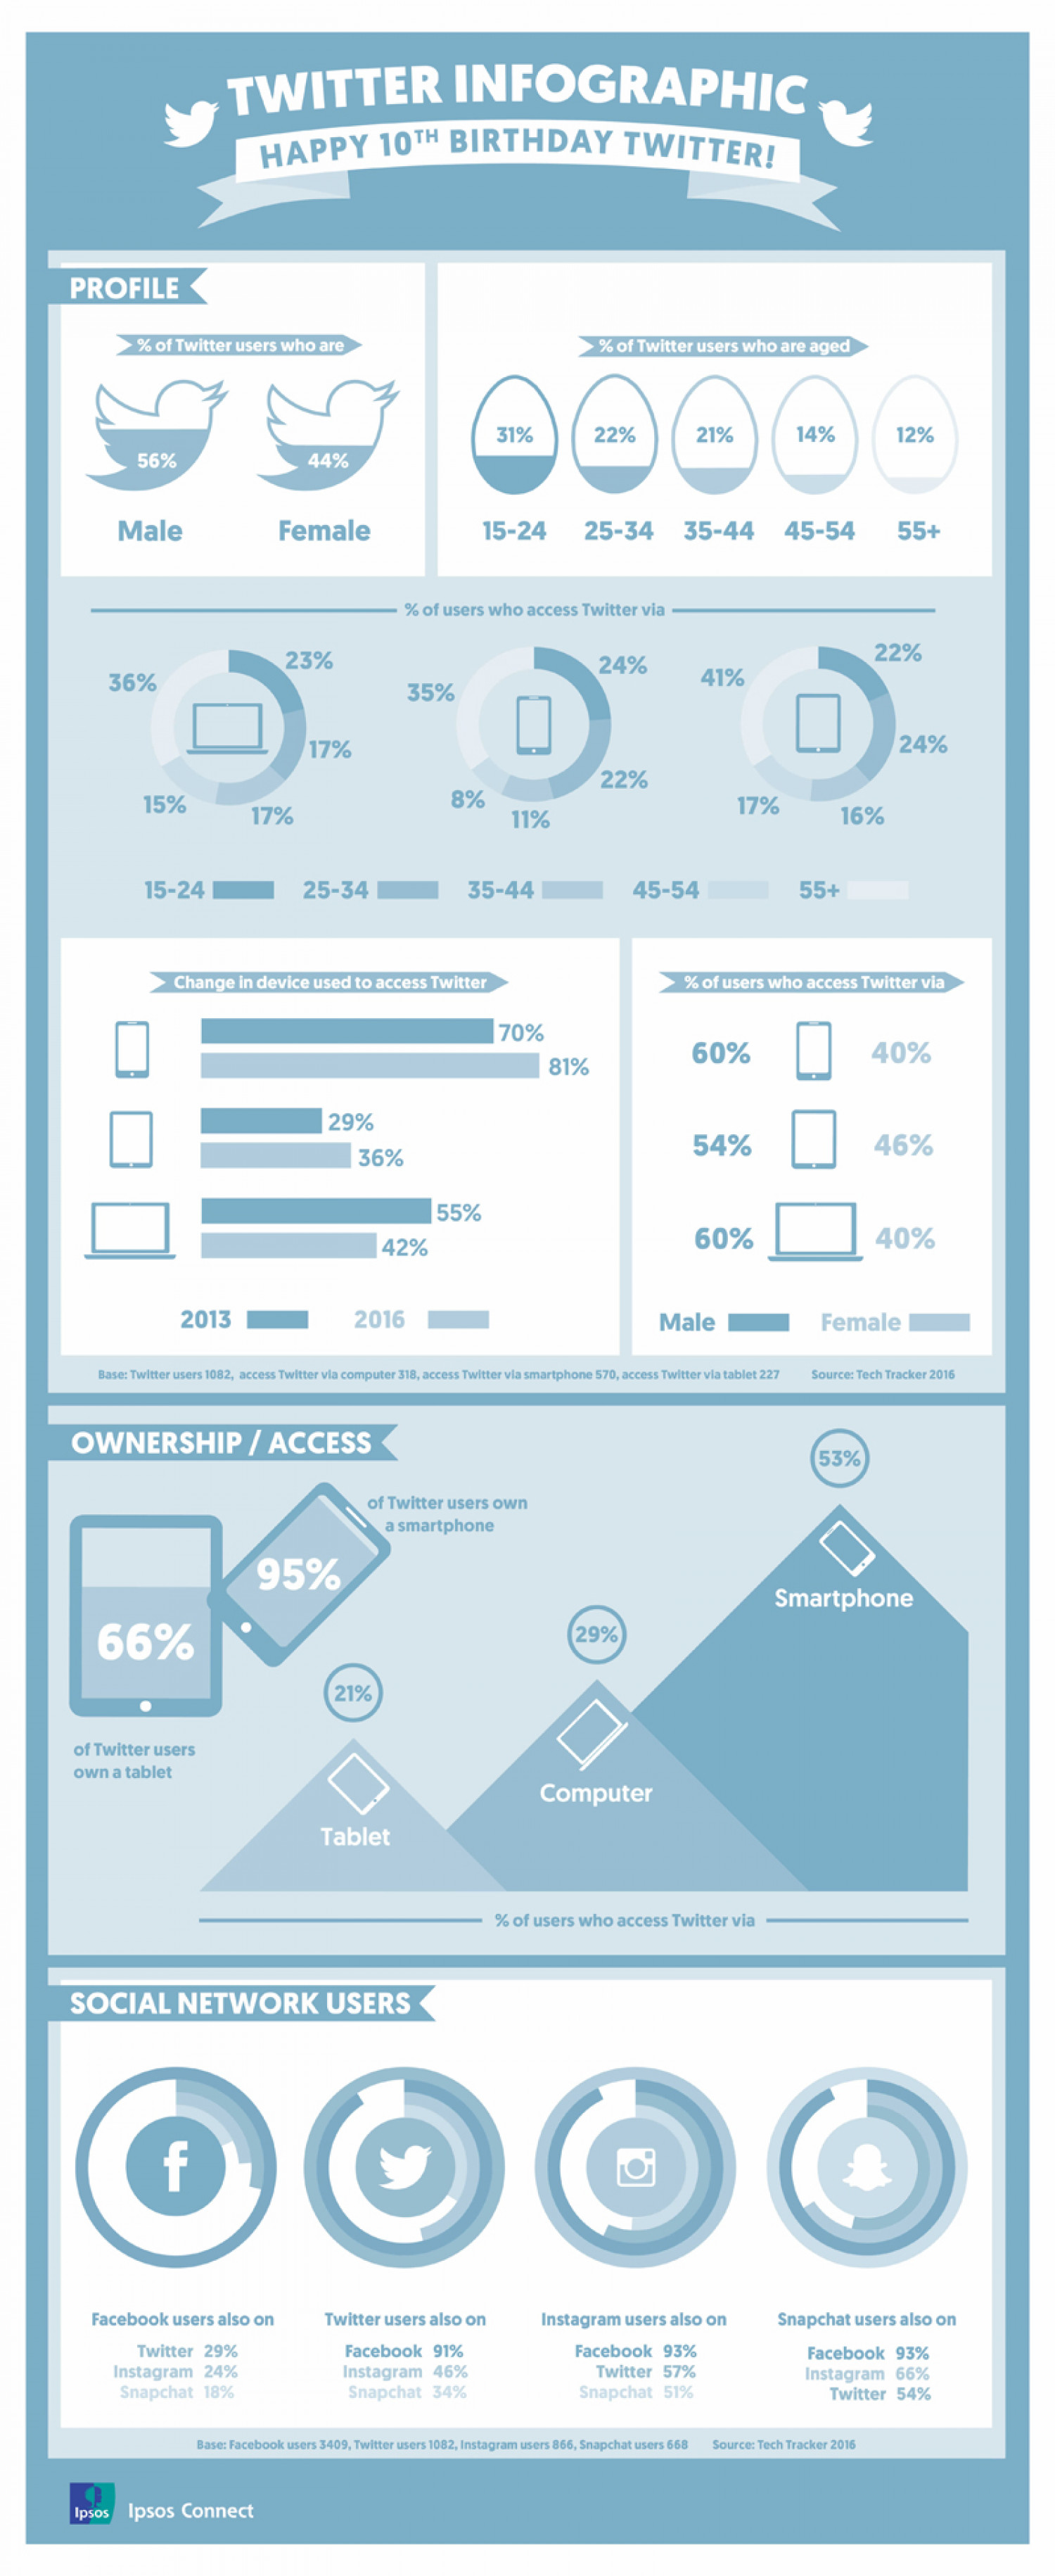 Happy 10th Birthday Twitter! From Ipsos Connect Infographic